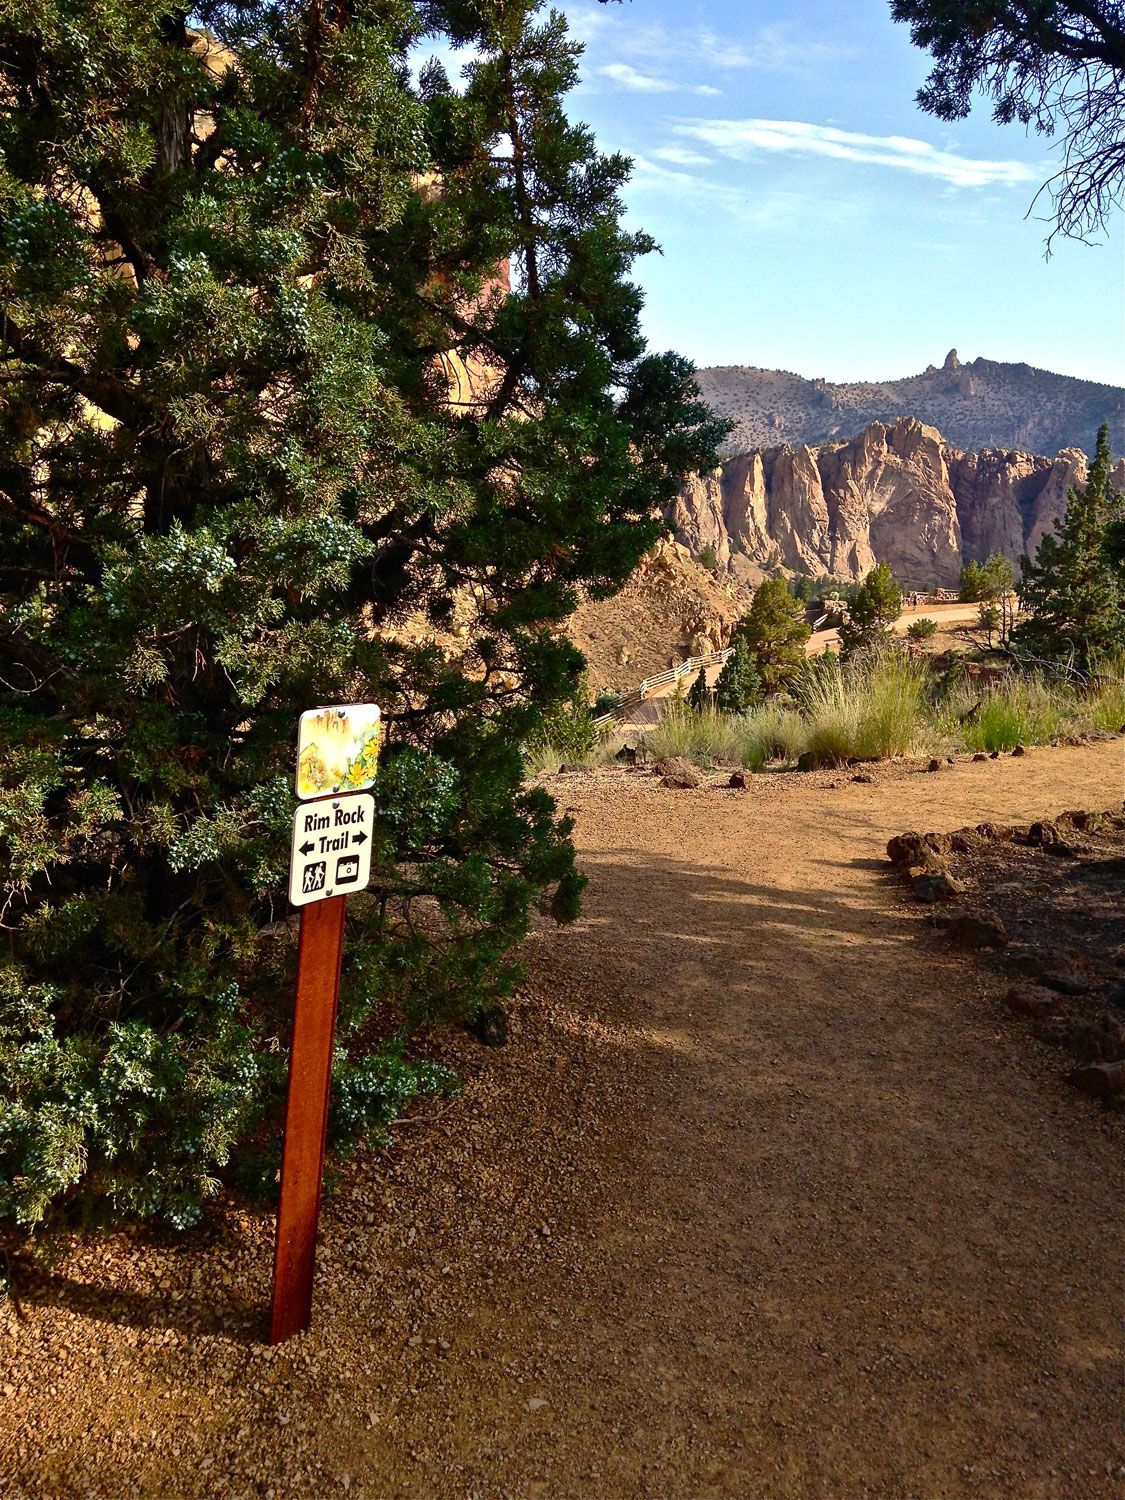 Signage along the Rim Rock Trail at Smith Rock State Park as you approach the path to the campground.